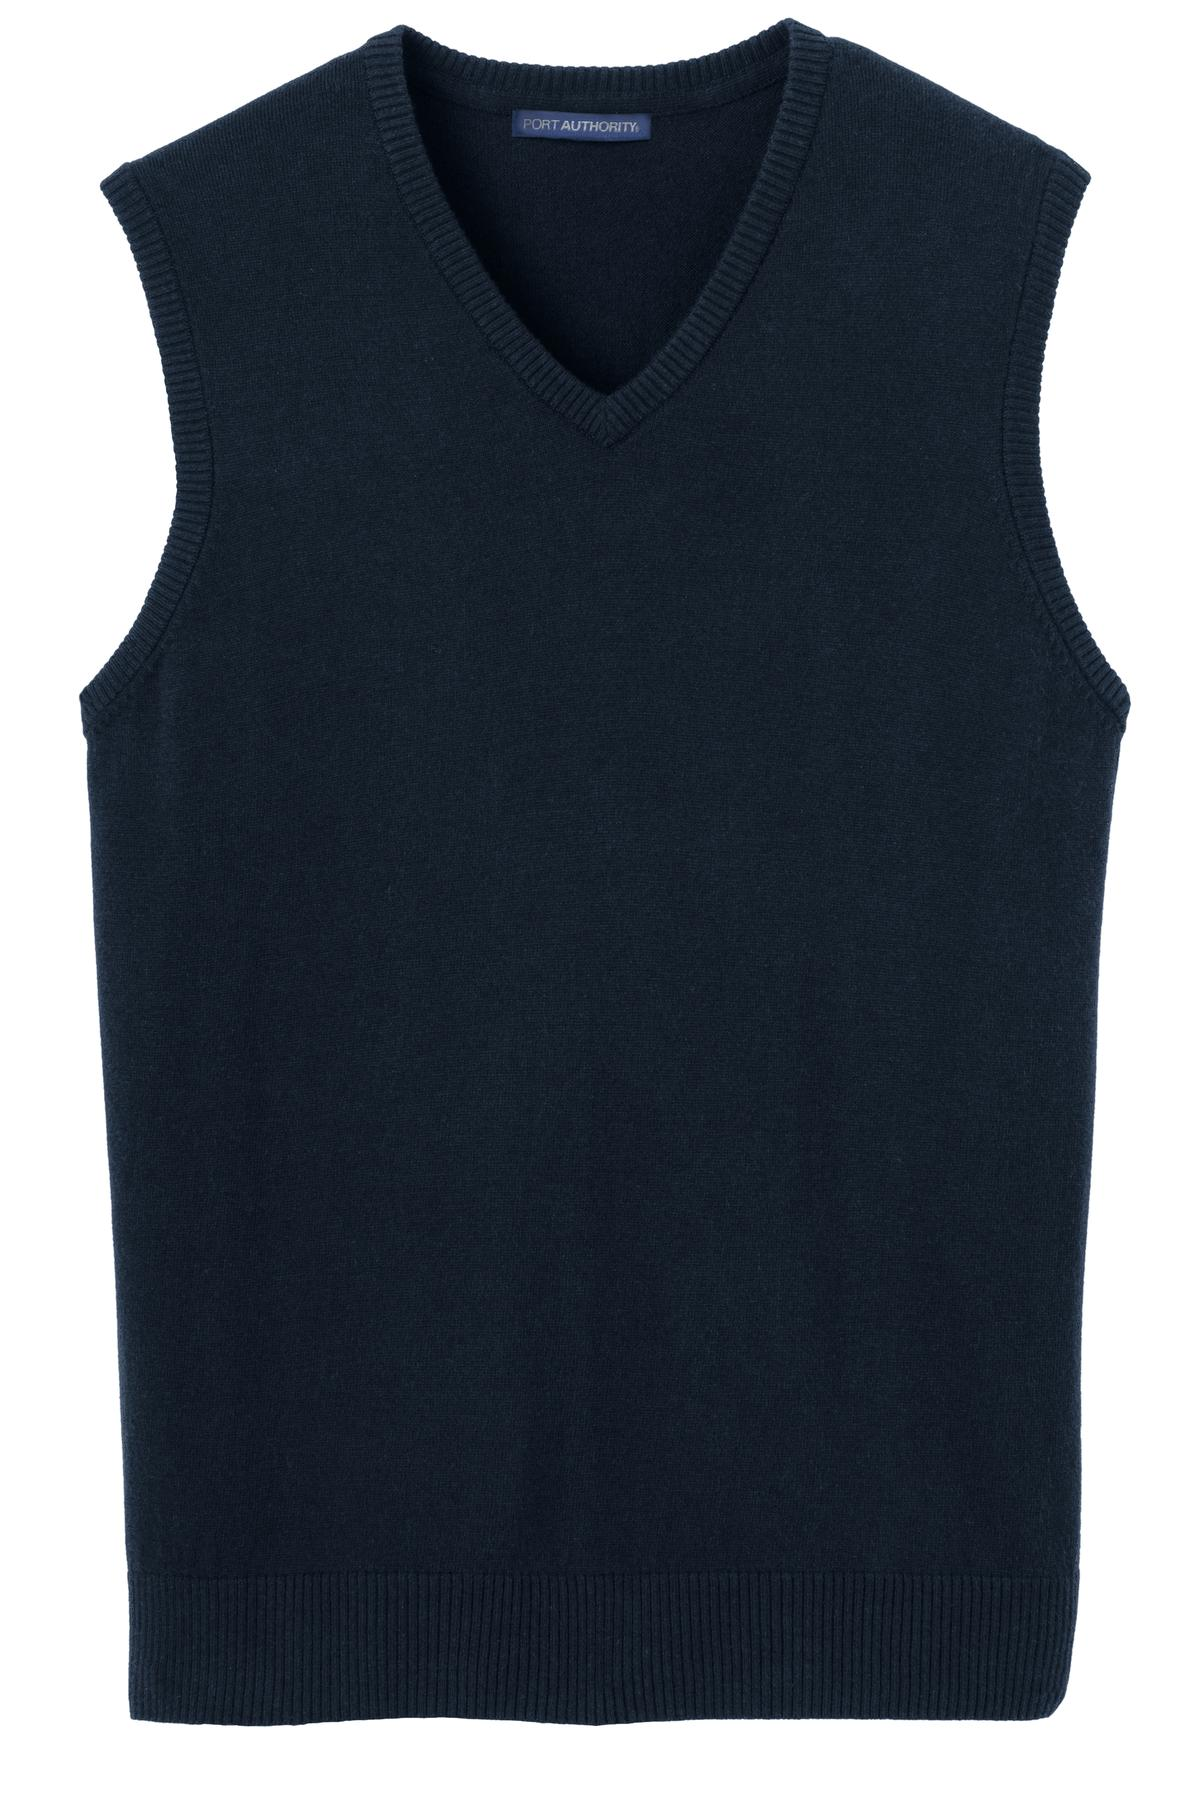 SoEnvy Mens Casual Slim Knitted Pullover V-neck Vest With Twisted Patterned SN227